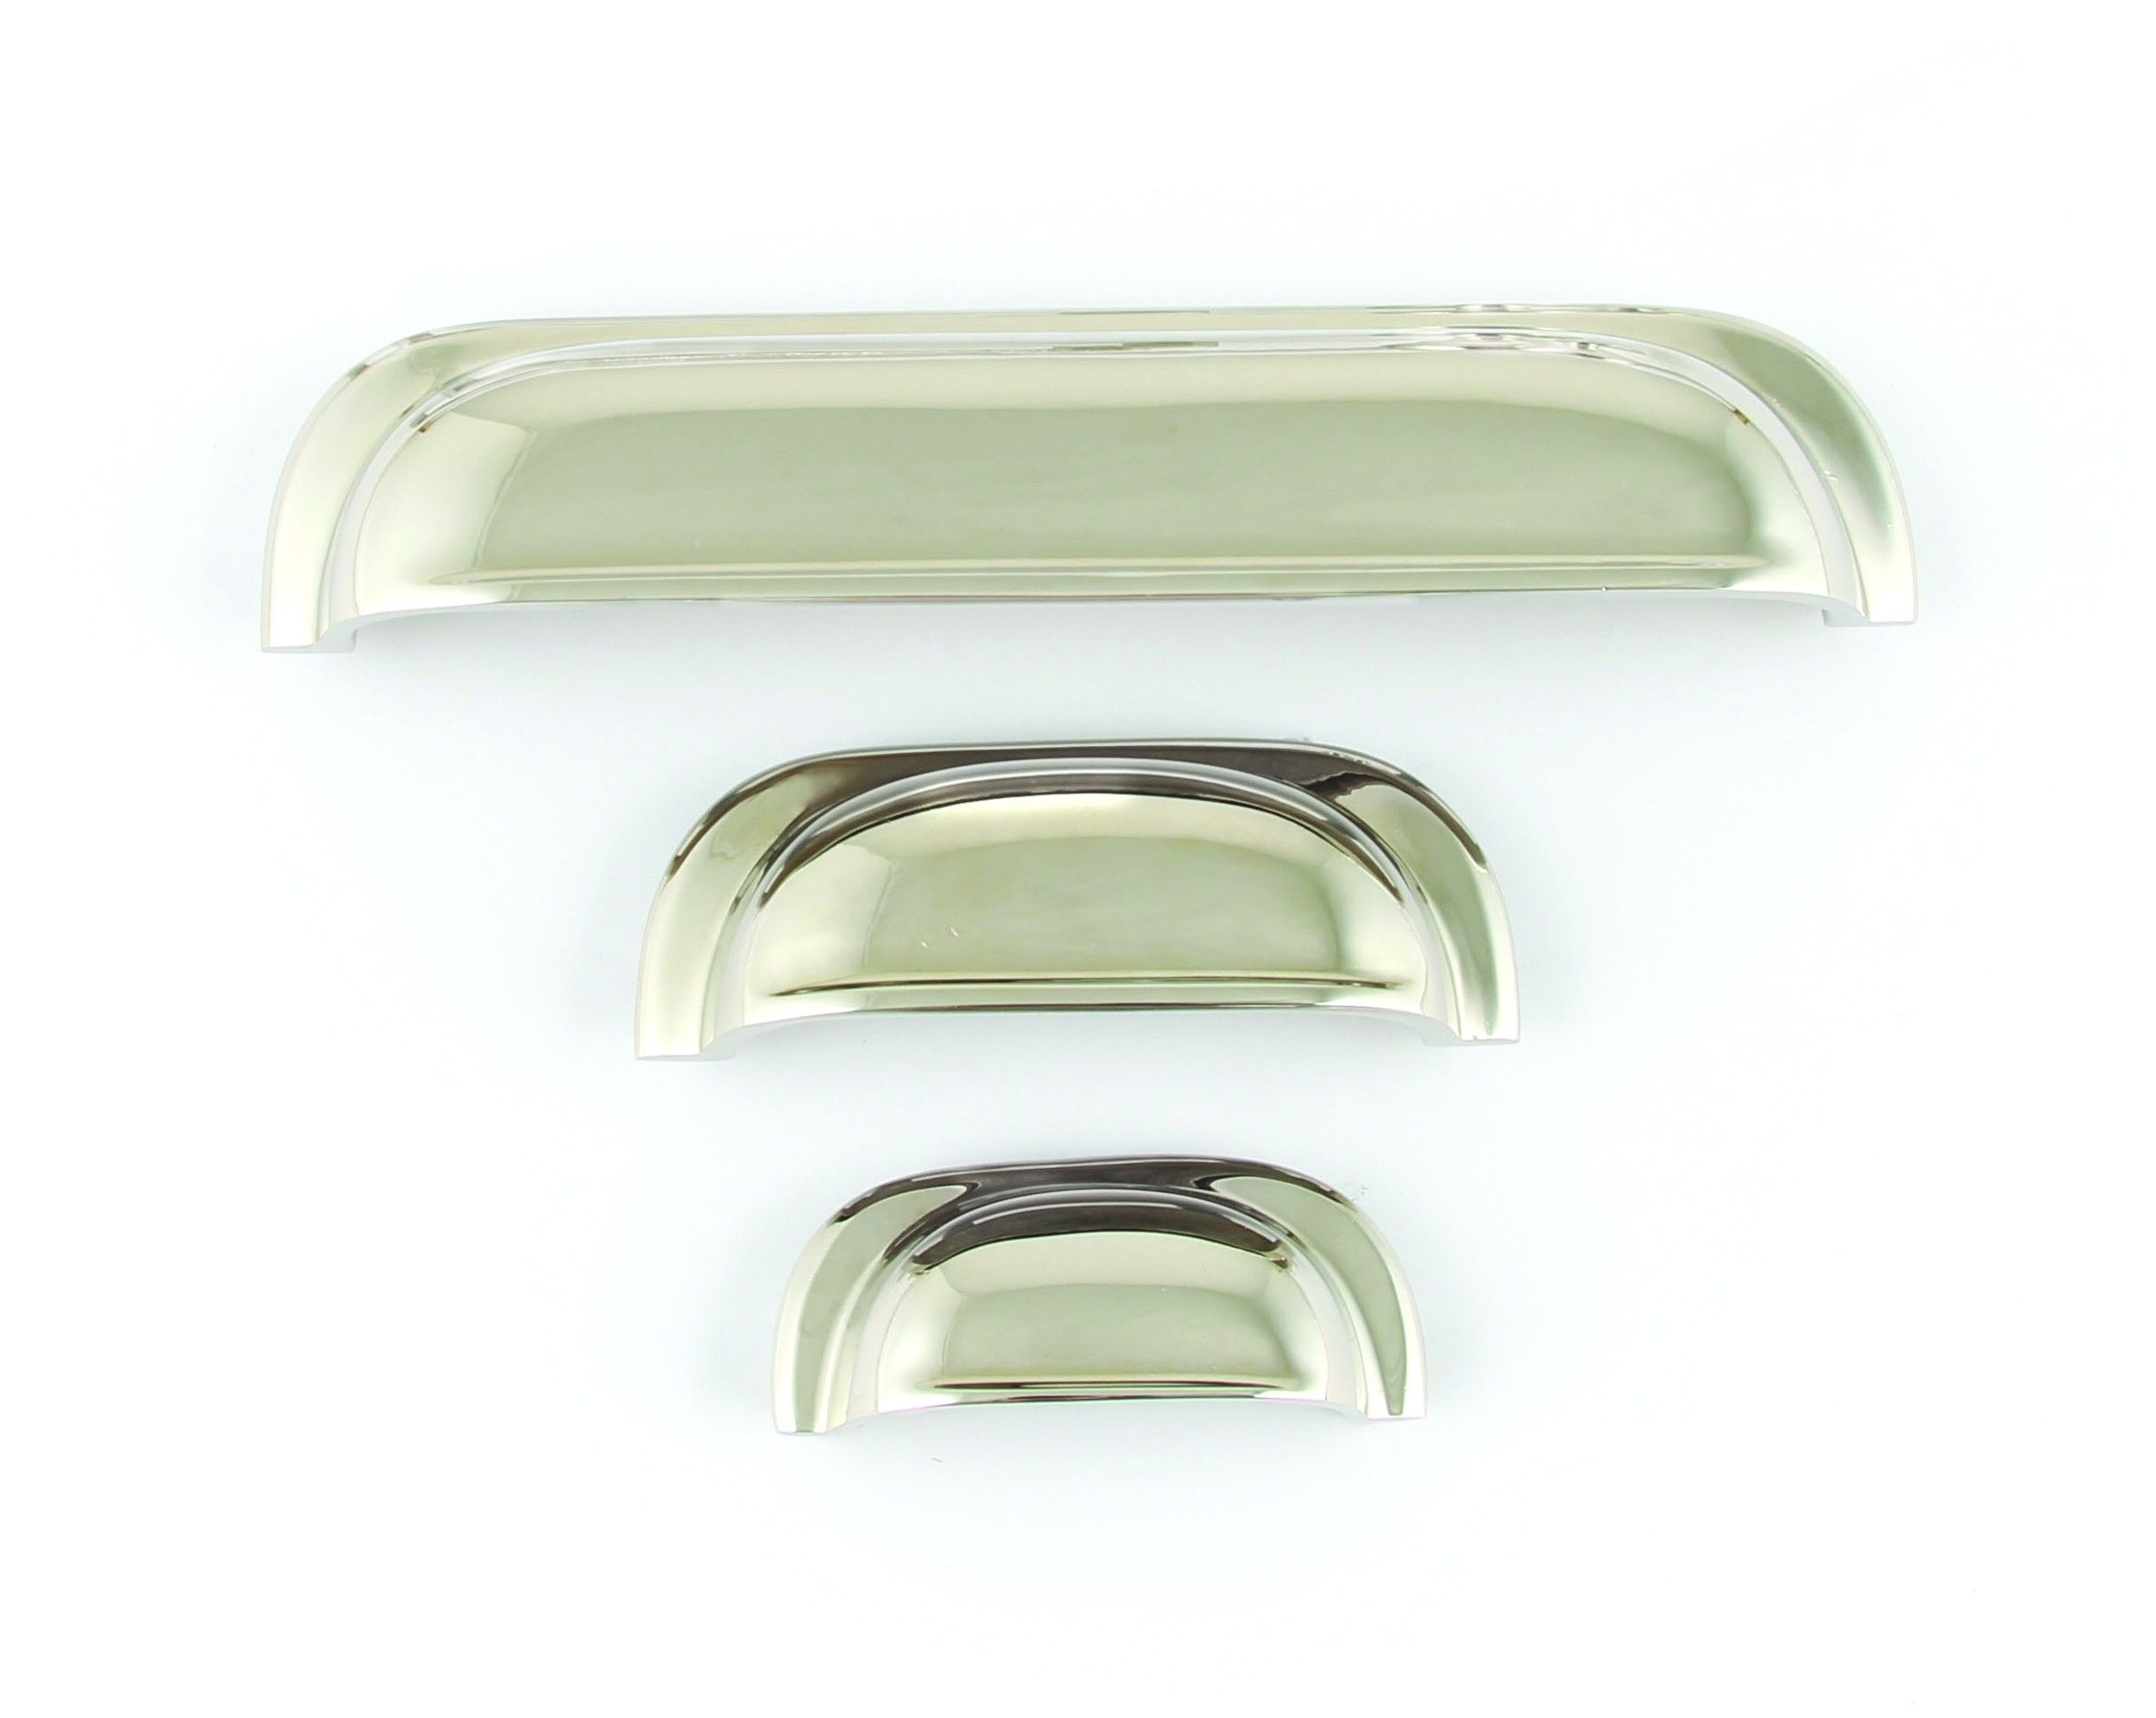 Cup handles for kitchen cupboards - Find This Pin And More On Kitchen Cupboard Handles